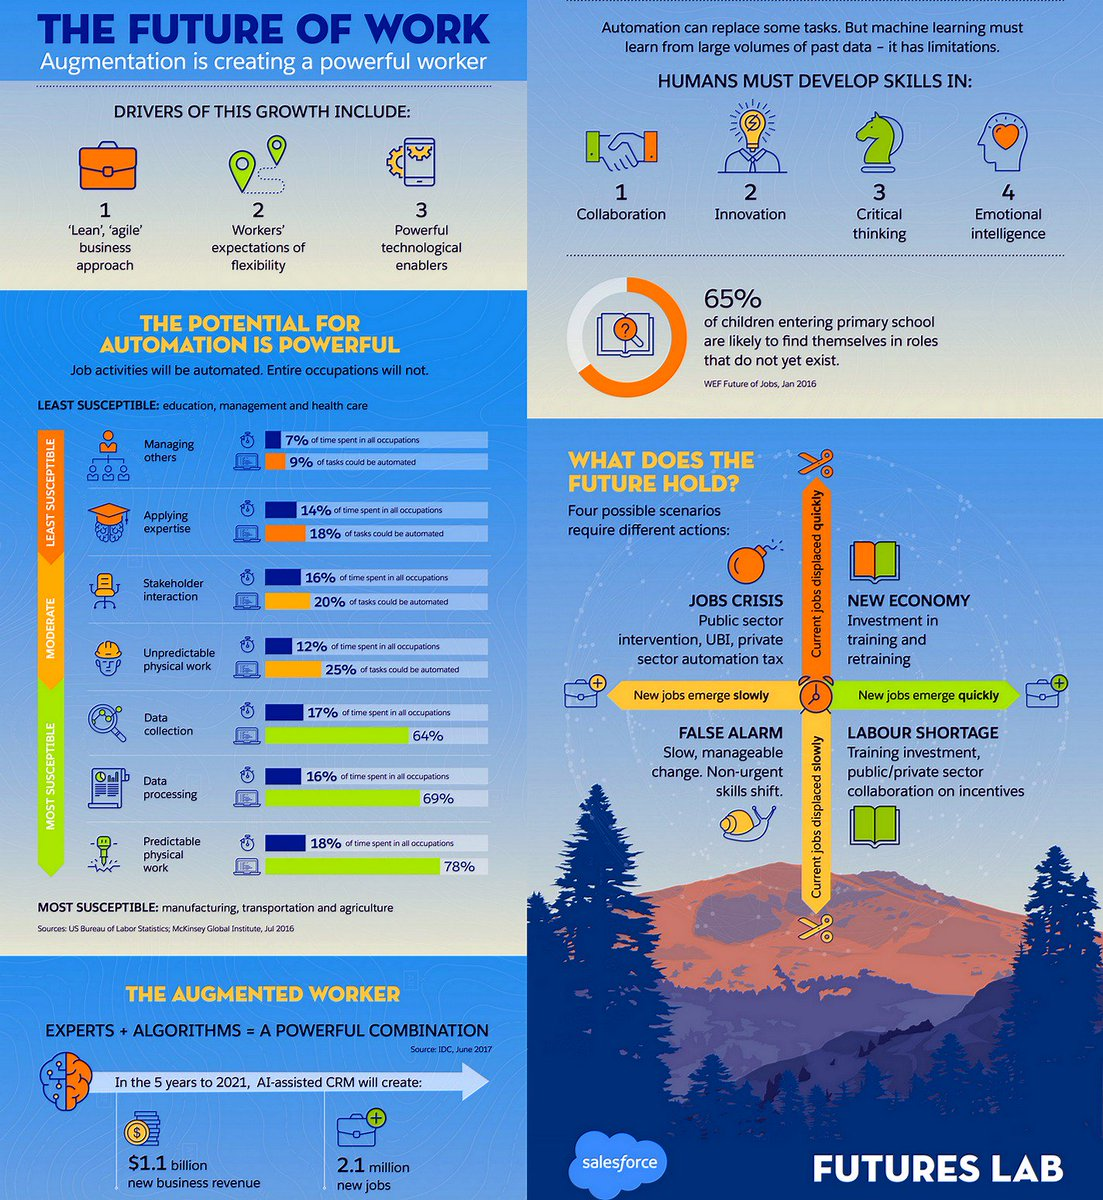 The #FutureOfWork: #Technology, Jobs and Augmented Intelligence   https:// buff.ly/2hToPxu  &nbsp;    v/ @salesforceapac #AI #Automation #BigData #MachineLearning #DeepLearning #Robots Cc @pierrepinna  @MarshaCollier @MikeQuindazzi @TheMisterFavor <br>http://pic.twitter.com/qcjFO8OhoU